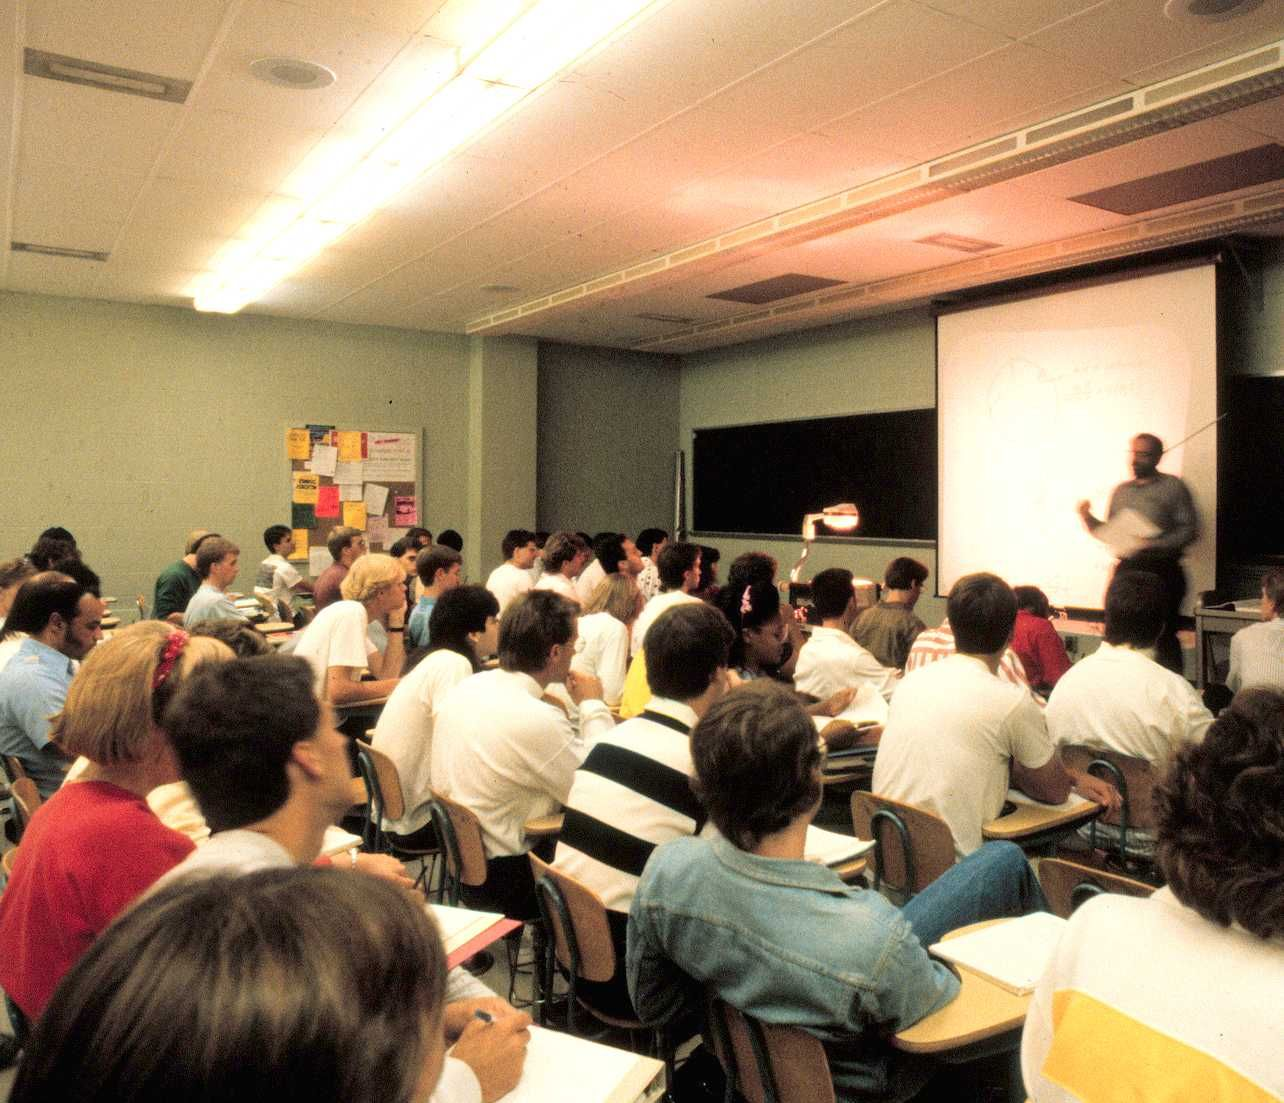 Christian Counseling lecture classes in college subjects